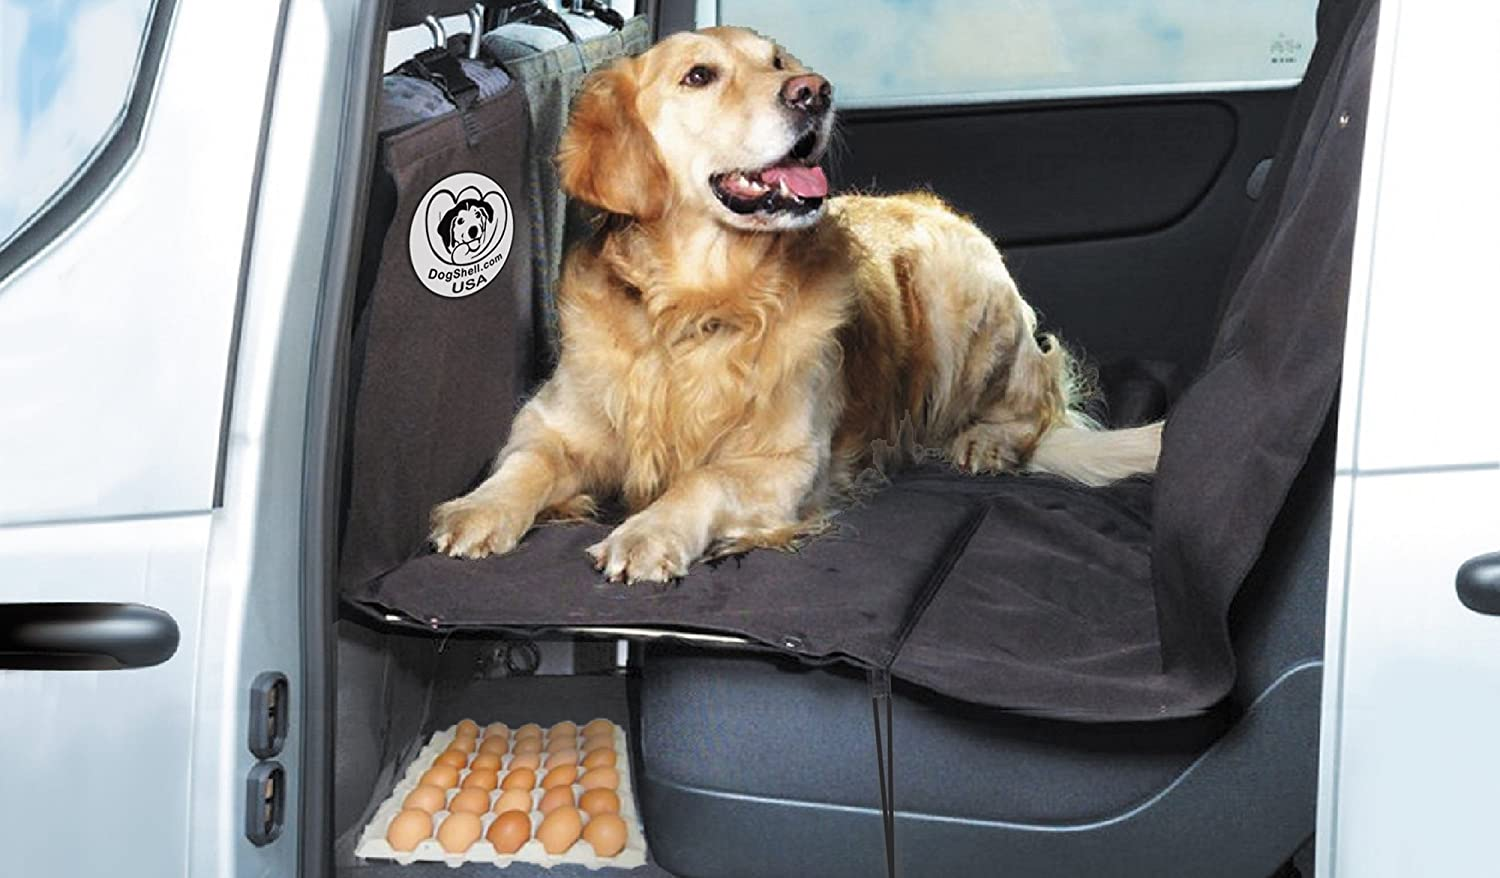 DogShell Car SUV Dog Pet Heavy-Duty Back Seat Cover Extended Platform Bridge